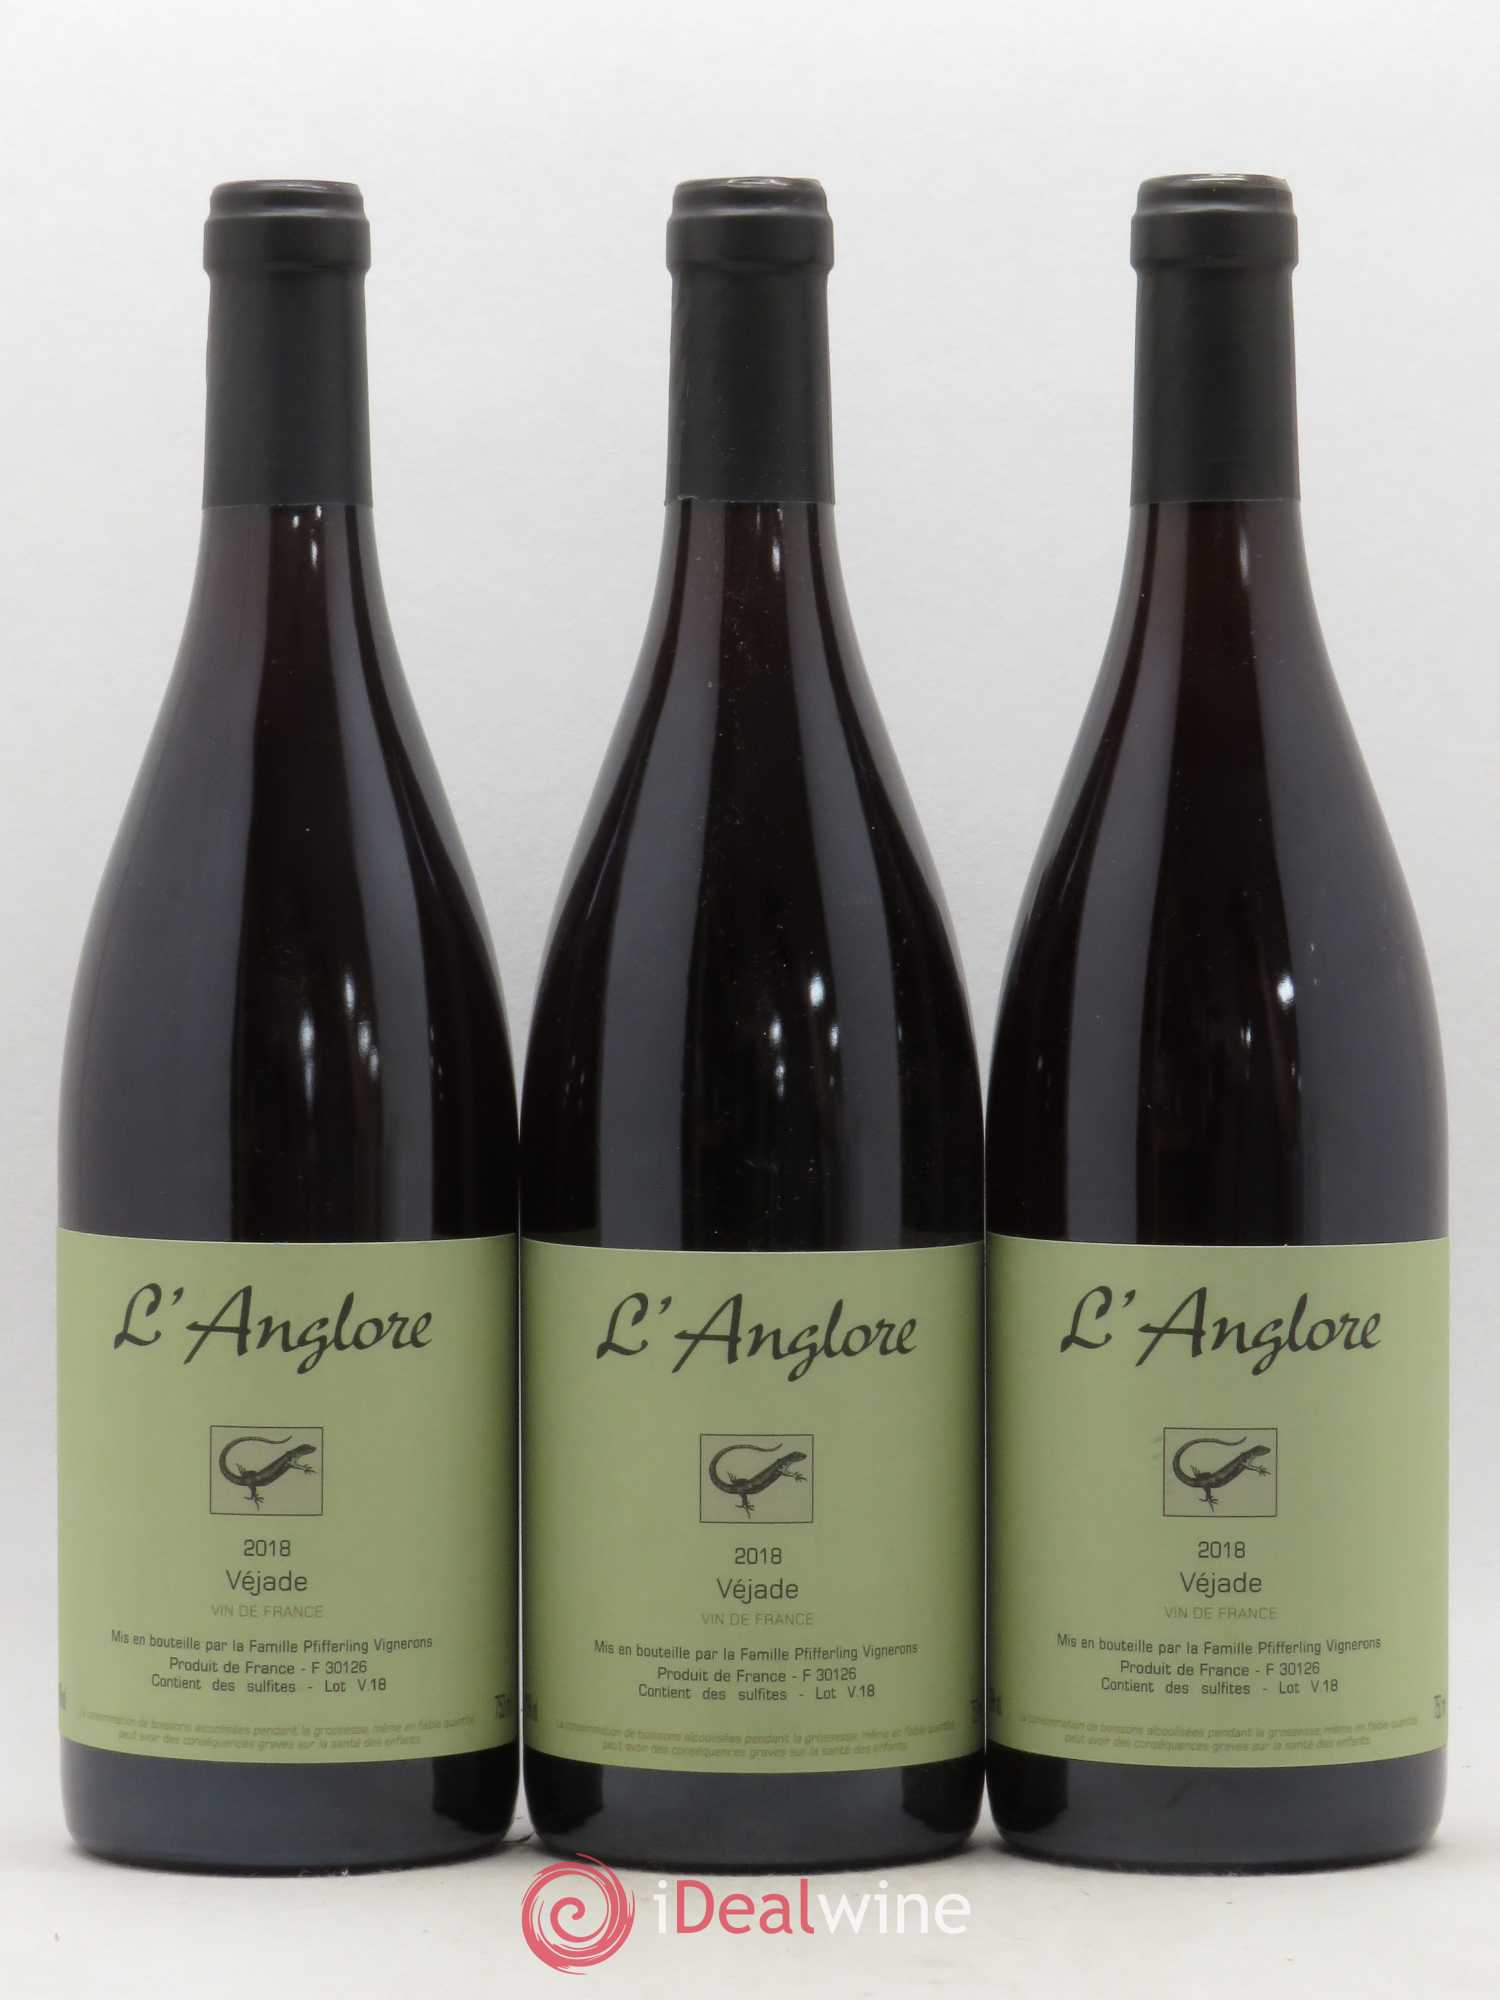 Vin de France Véjade L'Anglore  2018 - Lot of 3 Bottles